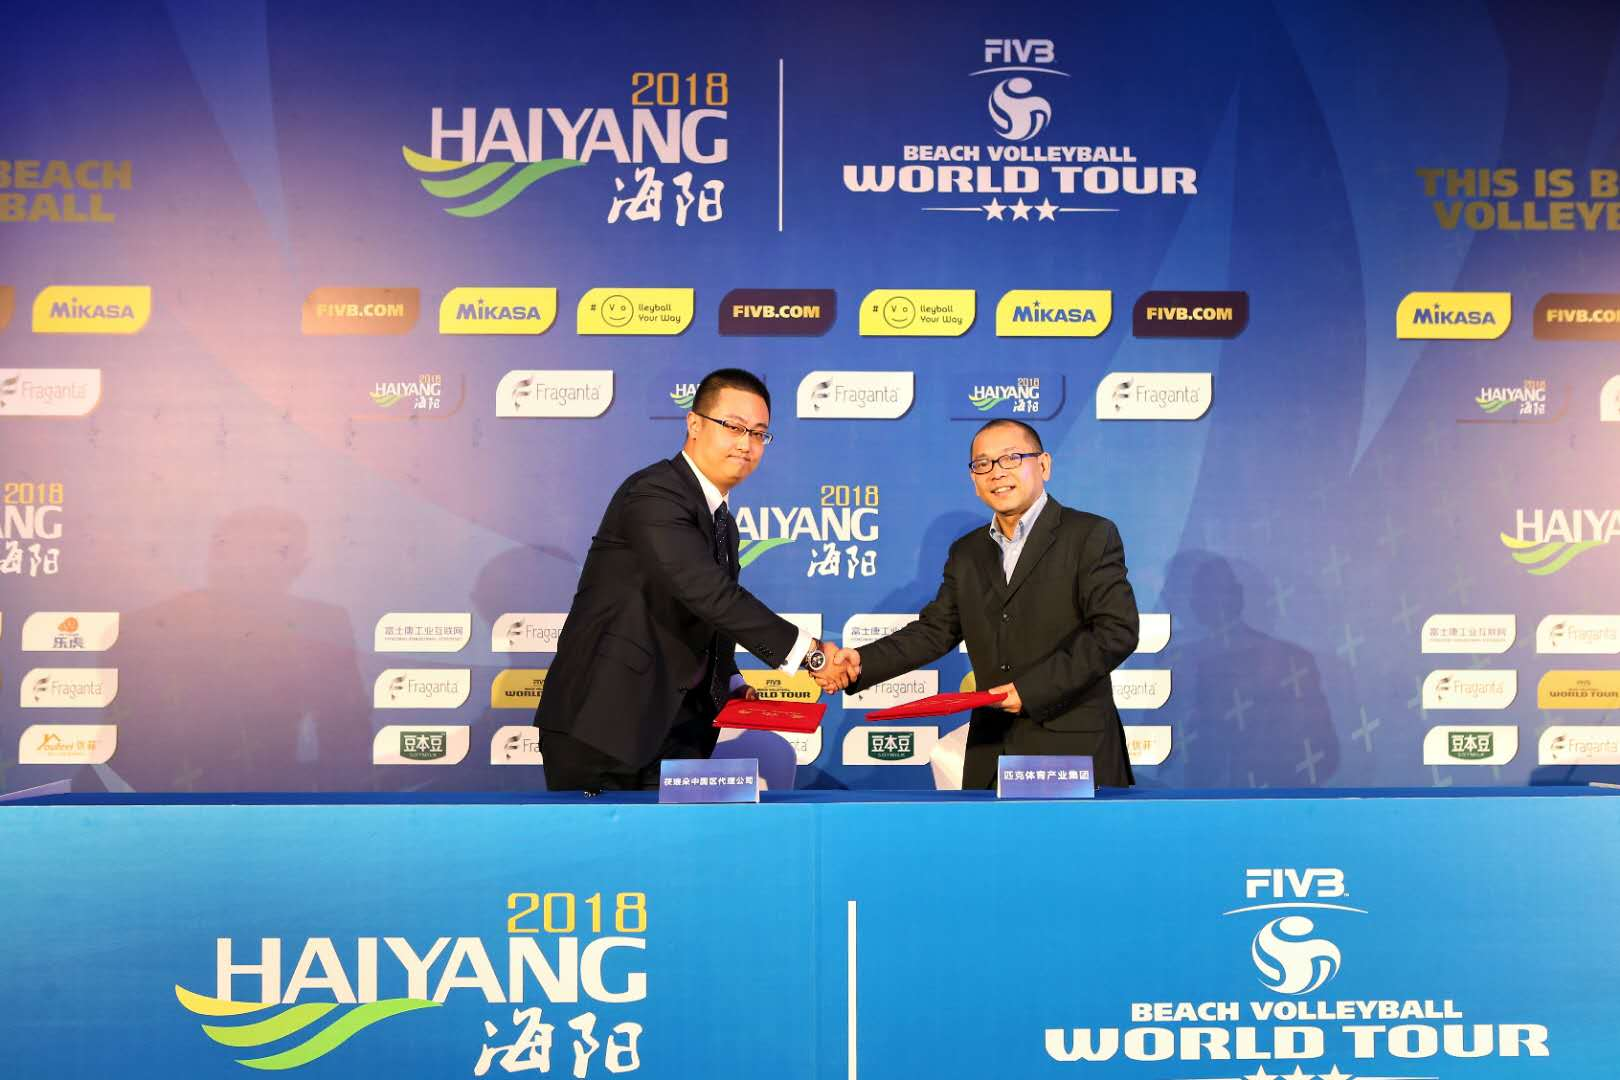 Haiyang to host beach volleyball event